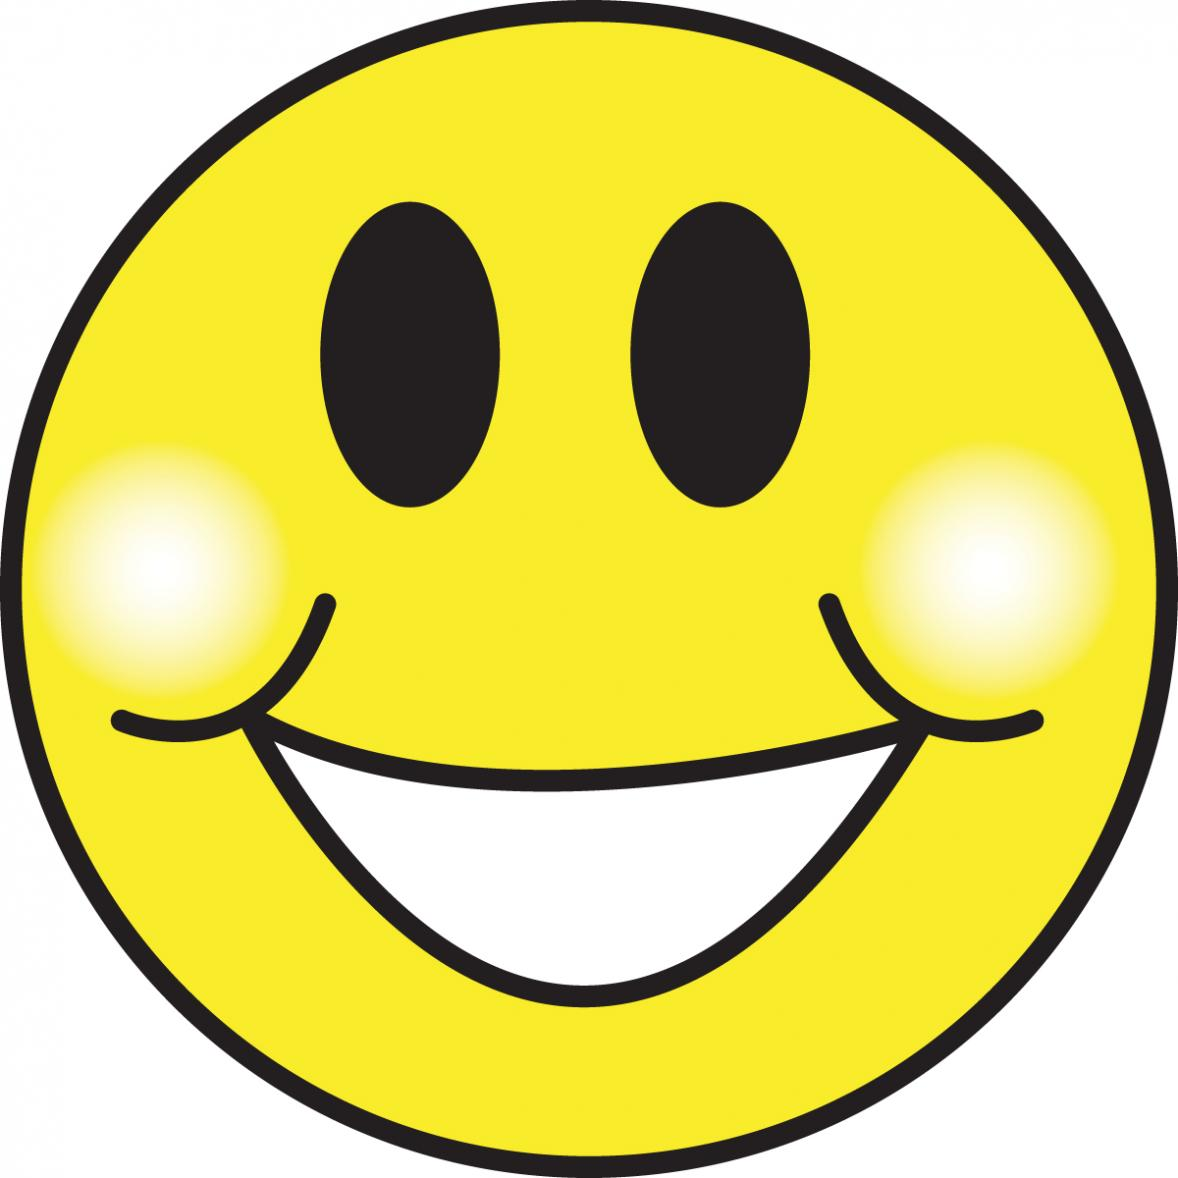 1178x1178 Smiley Face Thumbs Up Free Download Clip Art